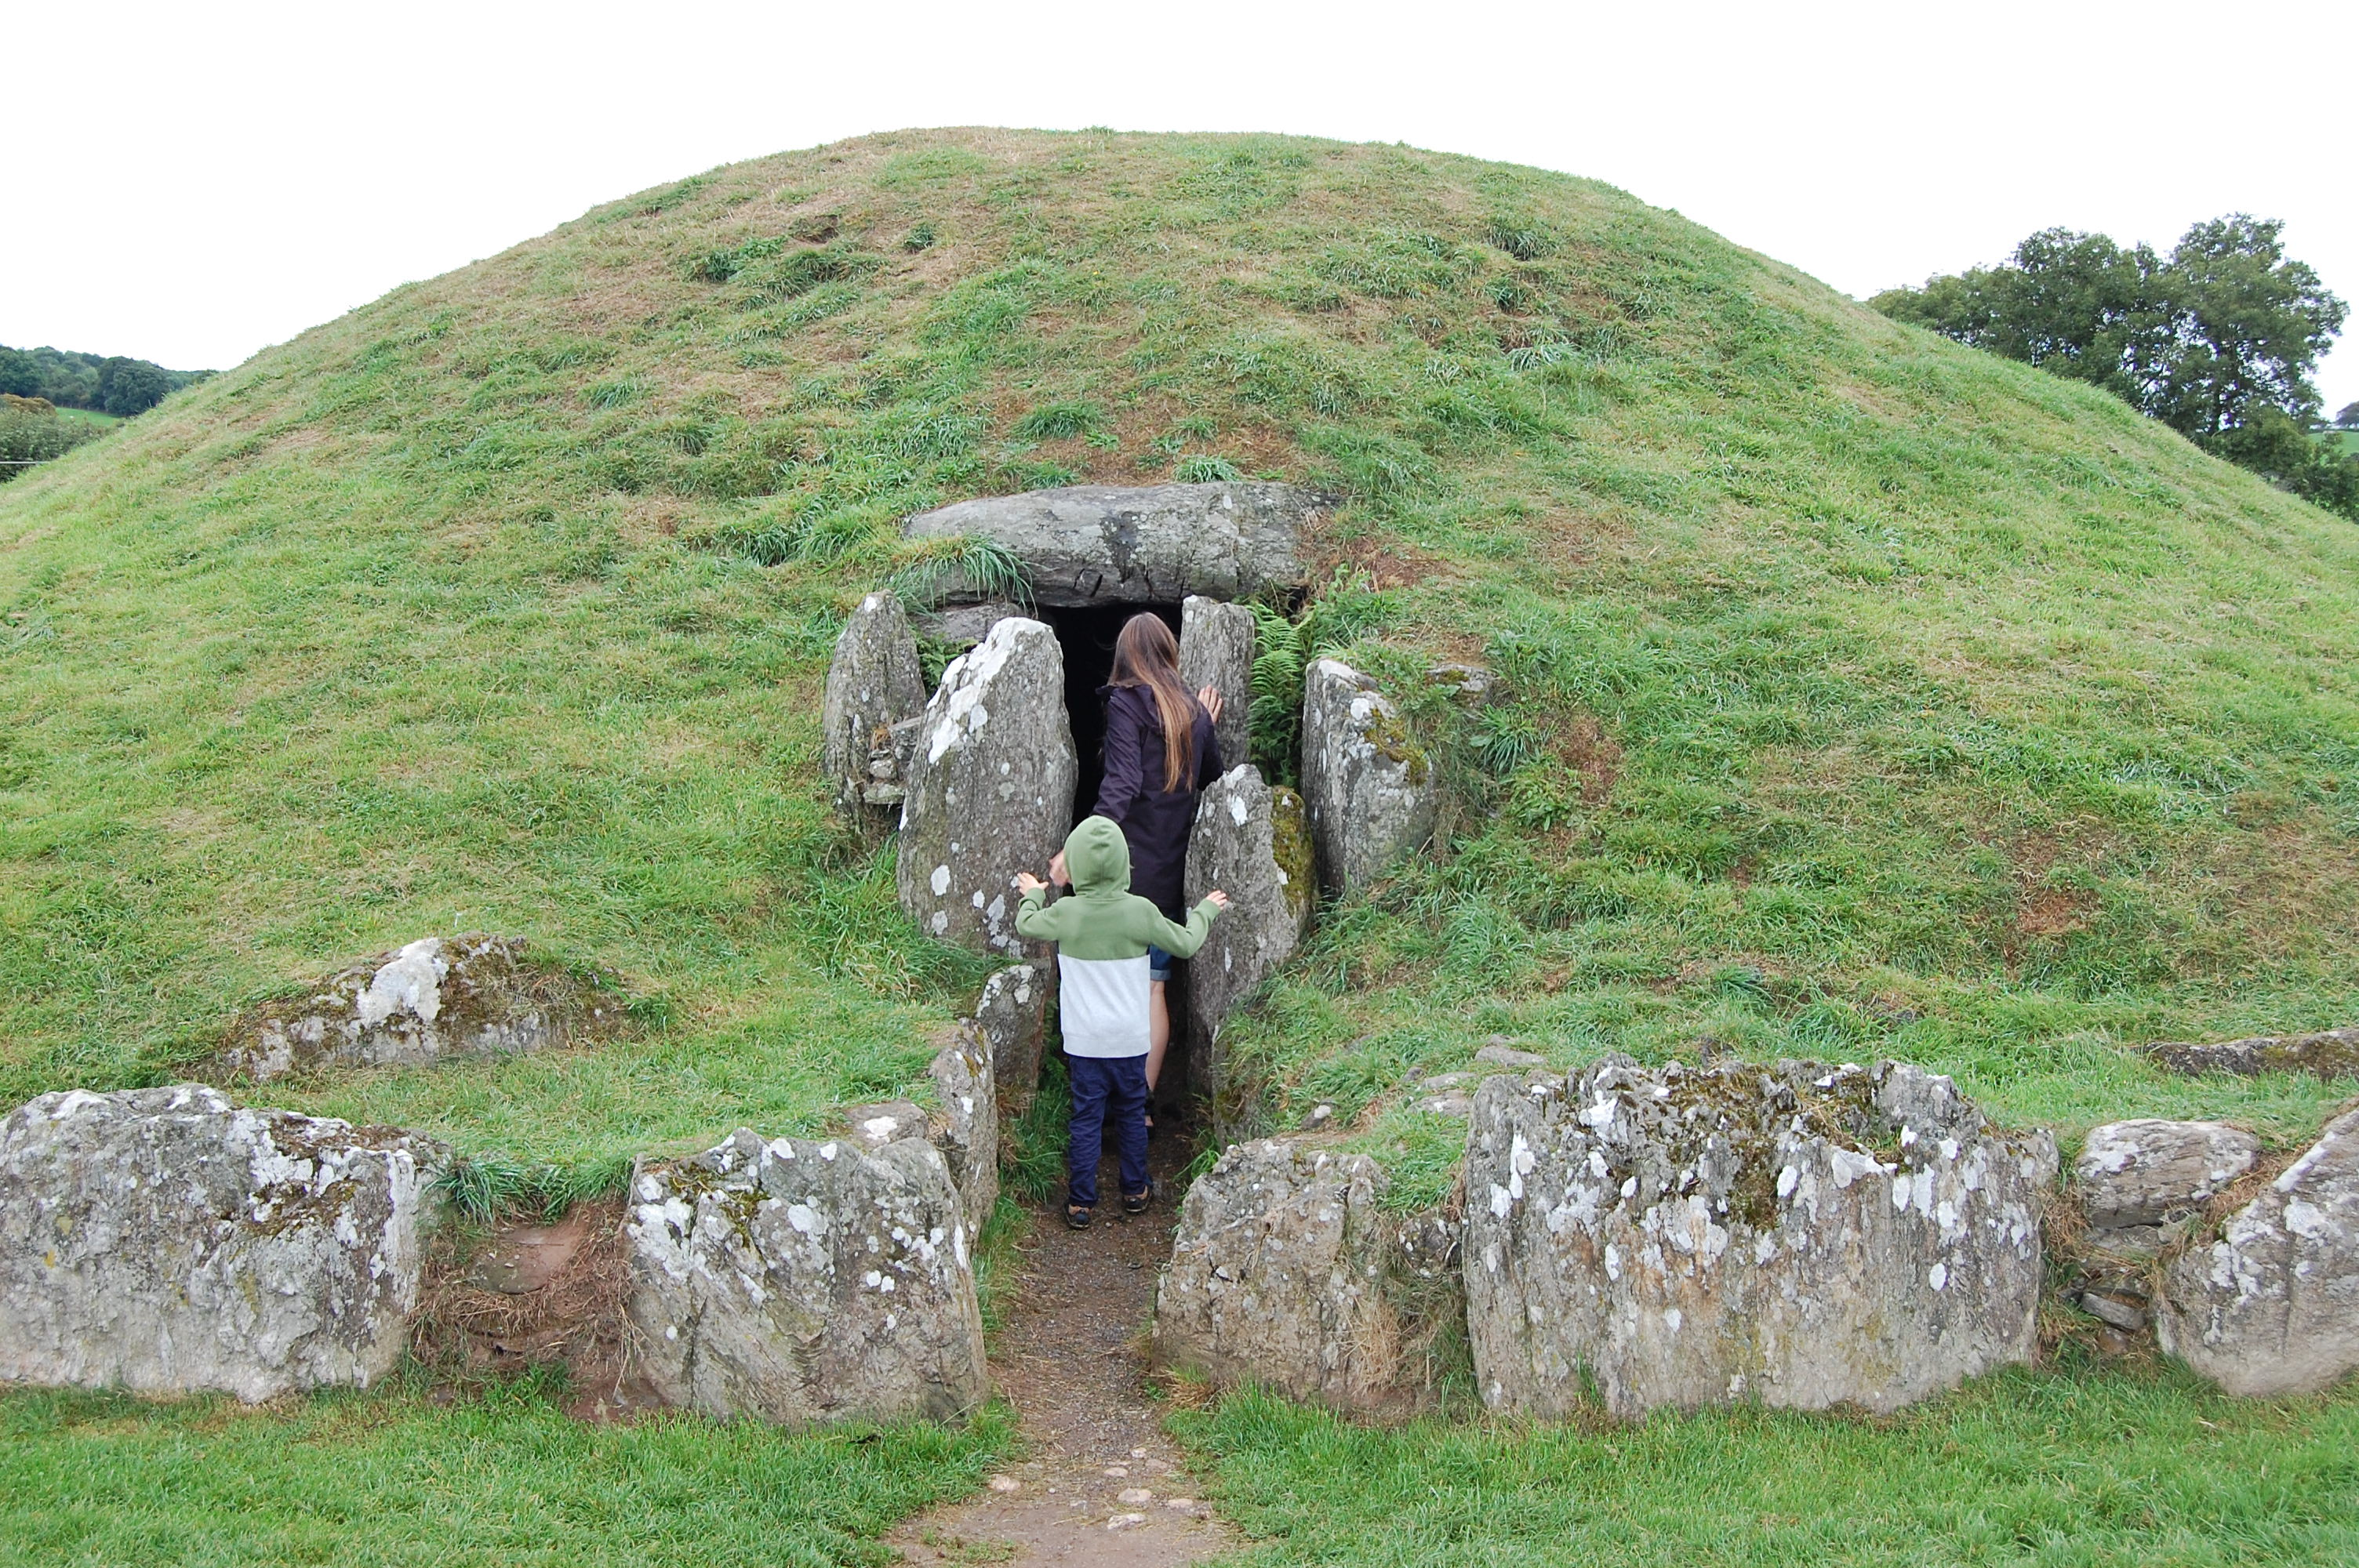 The author and her son heading into the opening of an ancient burial site ringed by stones and topped by a grassy mound.